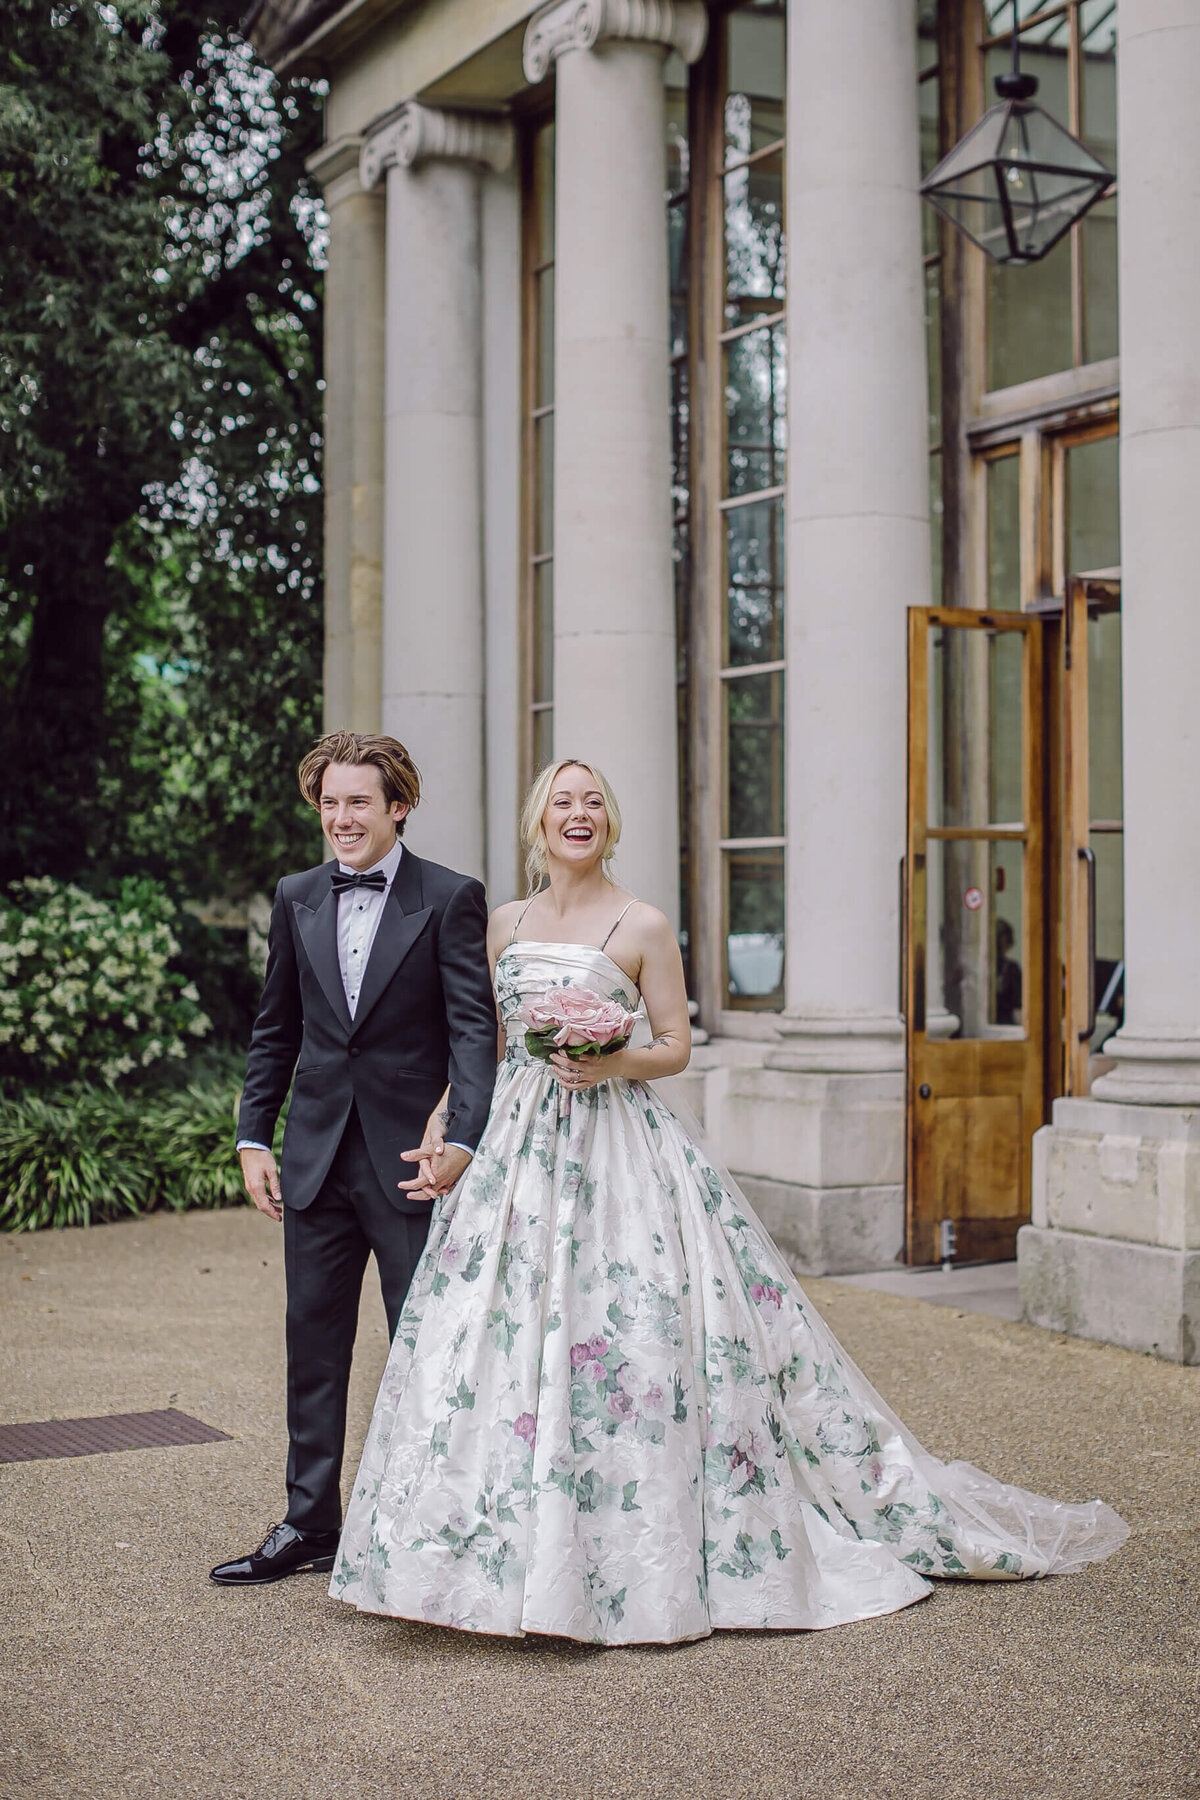 Ellie&Seb, July 06, 2019, 333